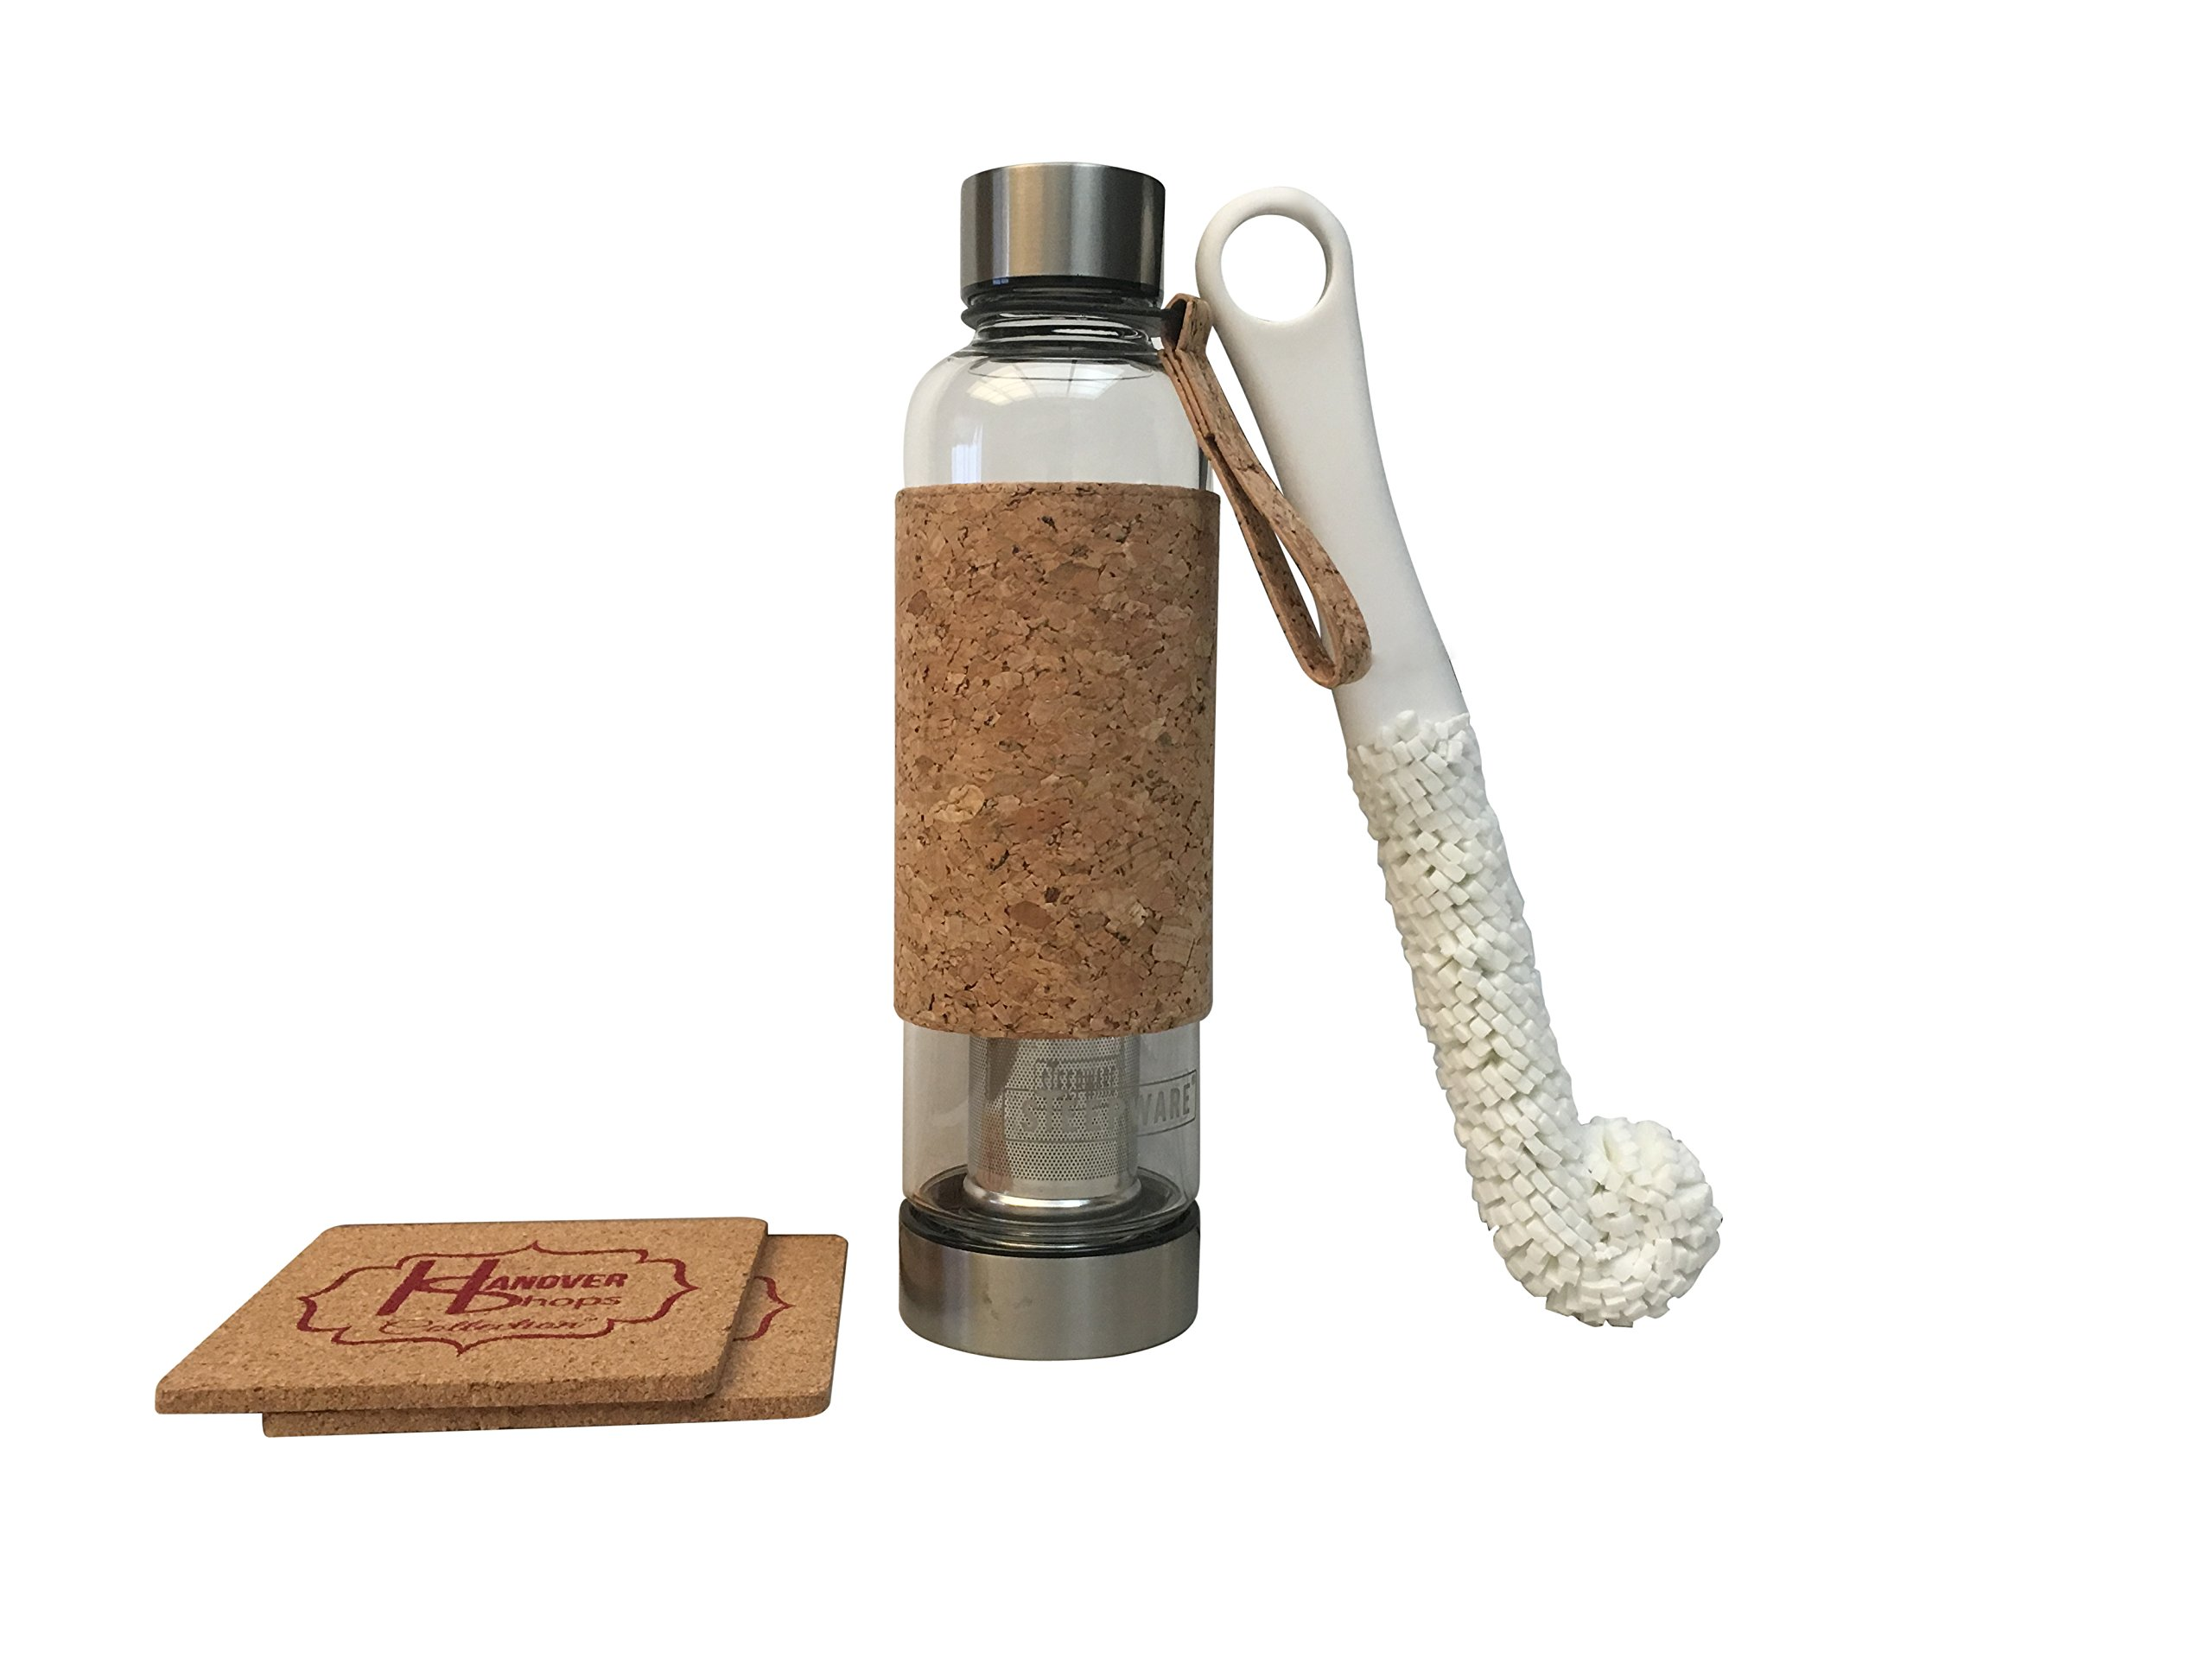 Urban Tea Tumbler with stainless steel infuser and lids, bottle sponge brush and cork coasters bundle by hanovershops